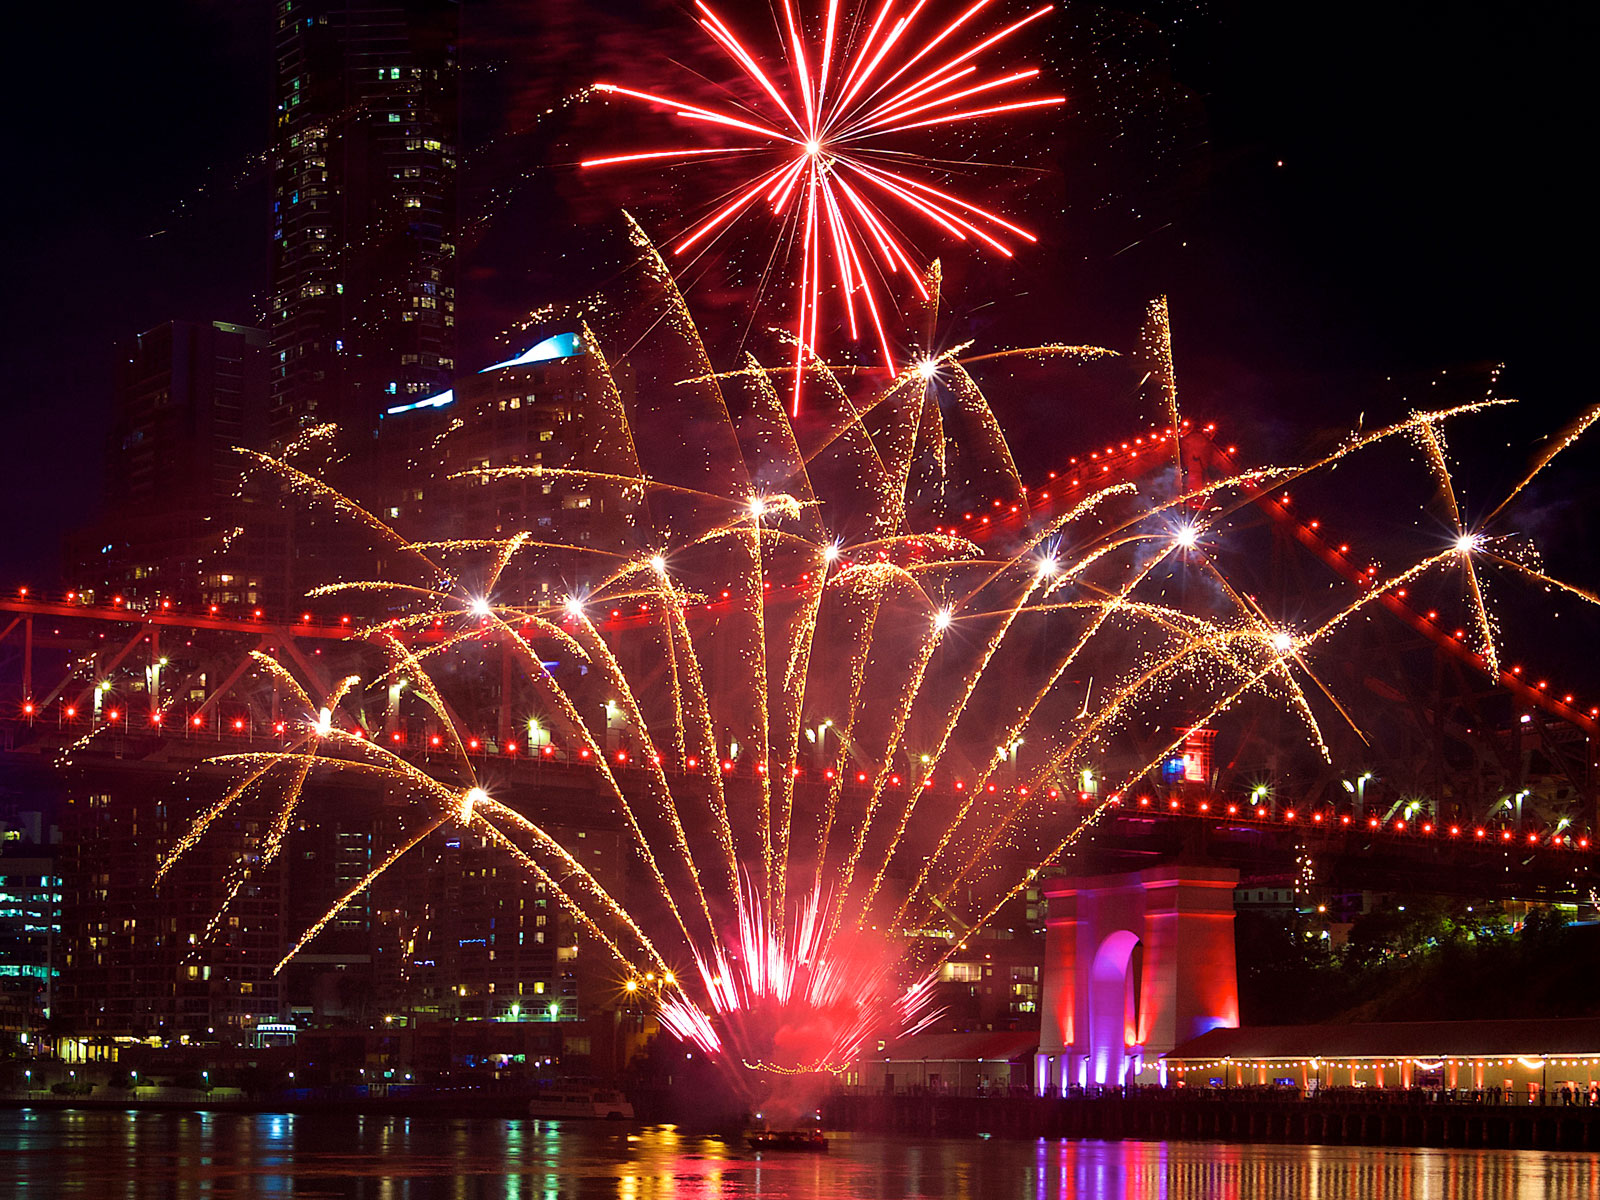 Fireworks All Fired Up Stage Fx Basics Of Electrical Firing Firework And Pyrotechnics Contact Us Today Lets Discuss What Ideas You Have For Your Next Event Via Phone On 07 3381 0788 Or Request A Free Quote Online